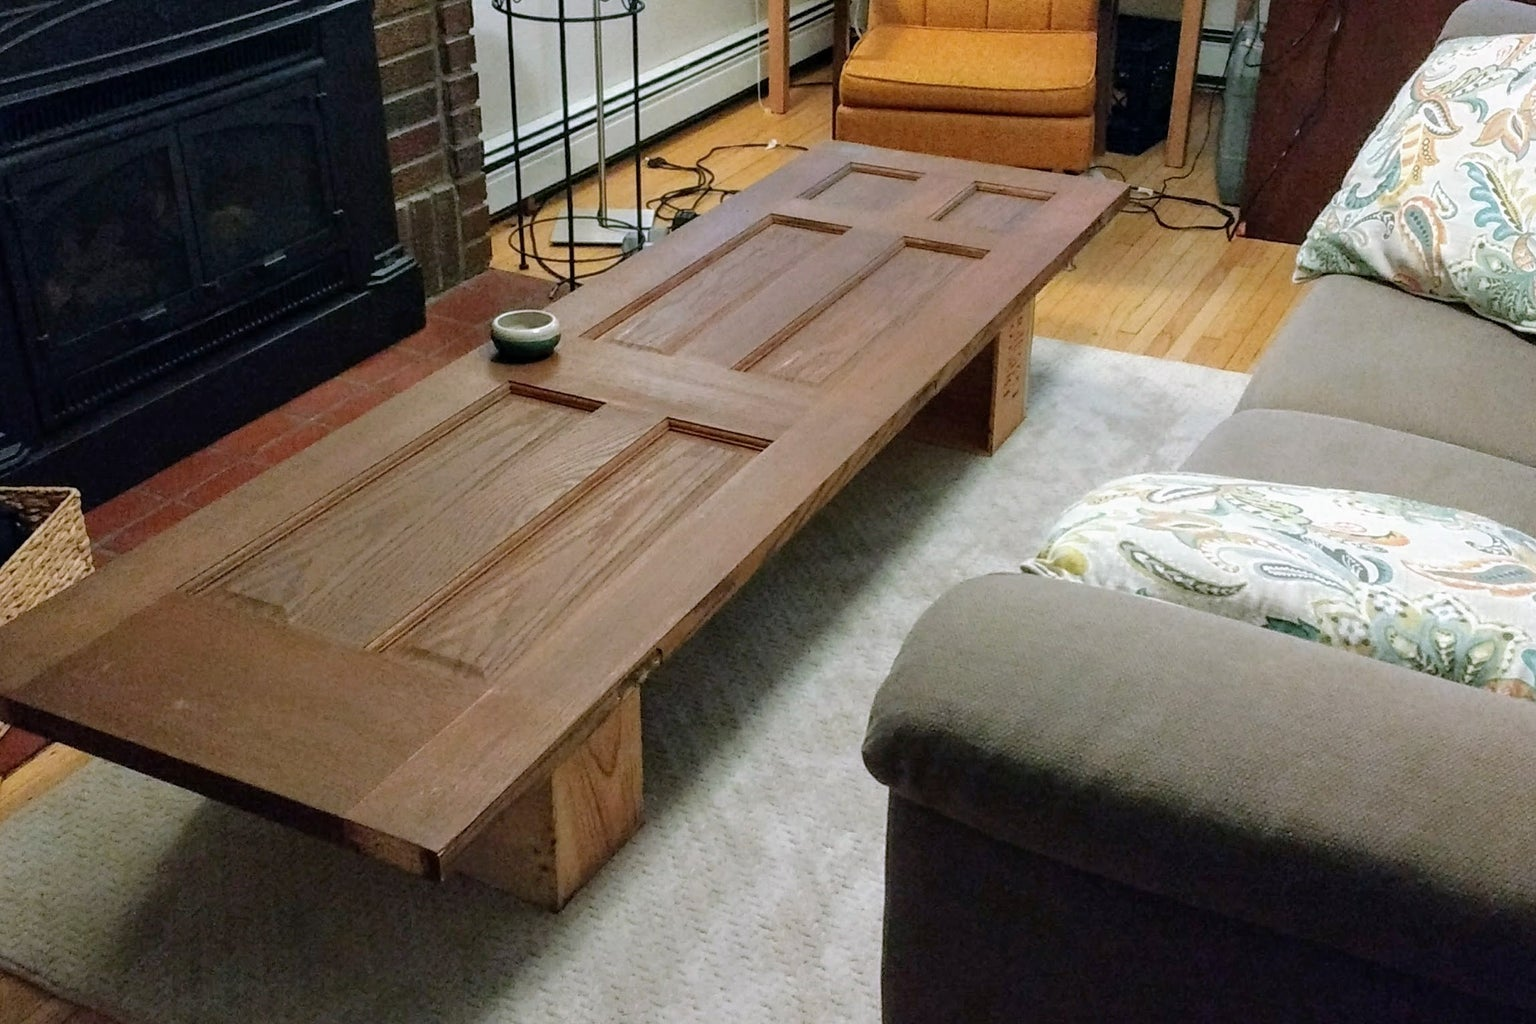 Simplest Coffee Table (ever?)